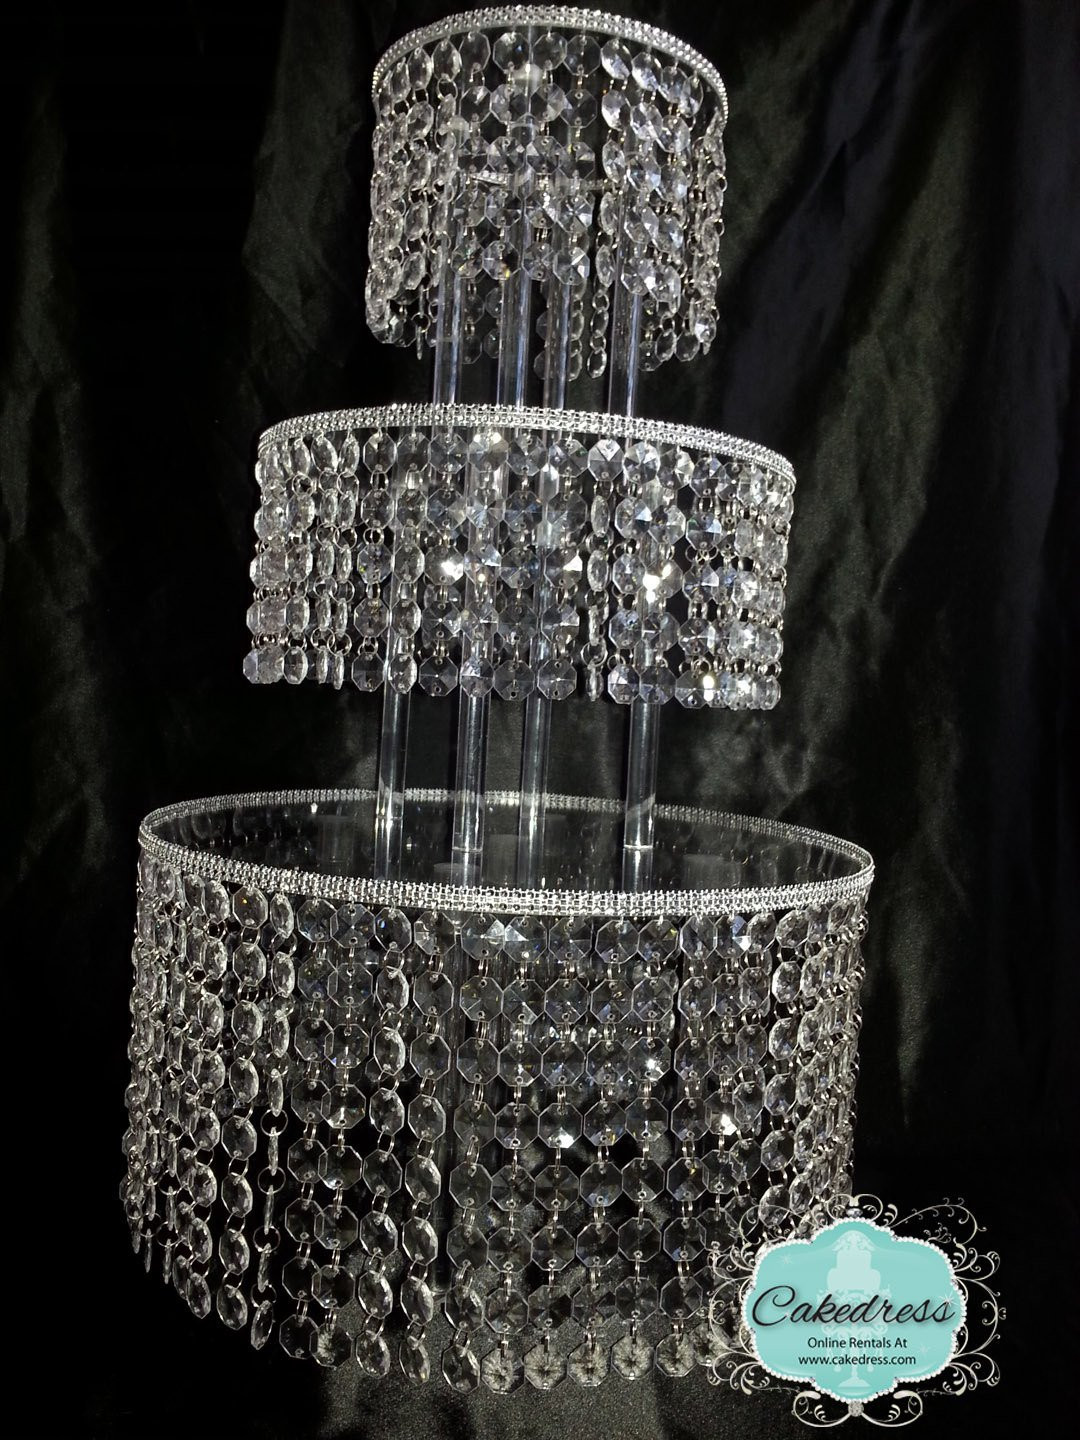 Crystal Cake Stands For Wedding Cakes  Crystal Wedding Cake Stand 5 Tier by CakeDress on Etsy